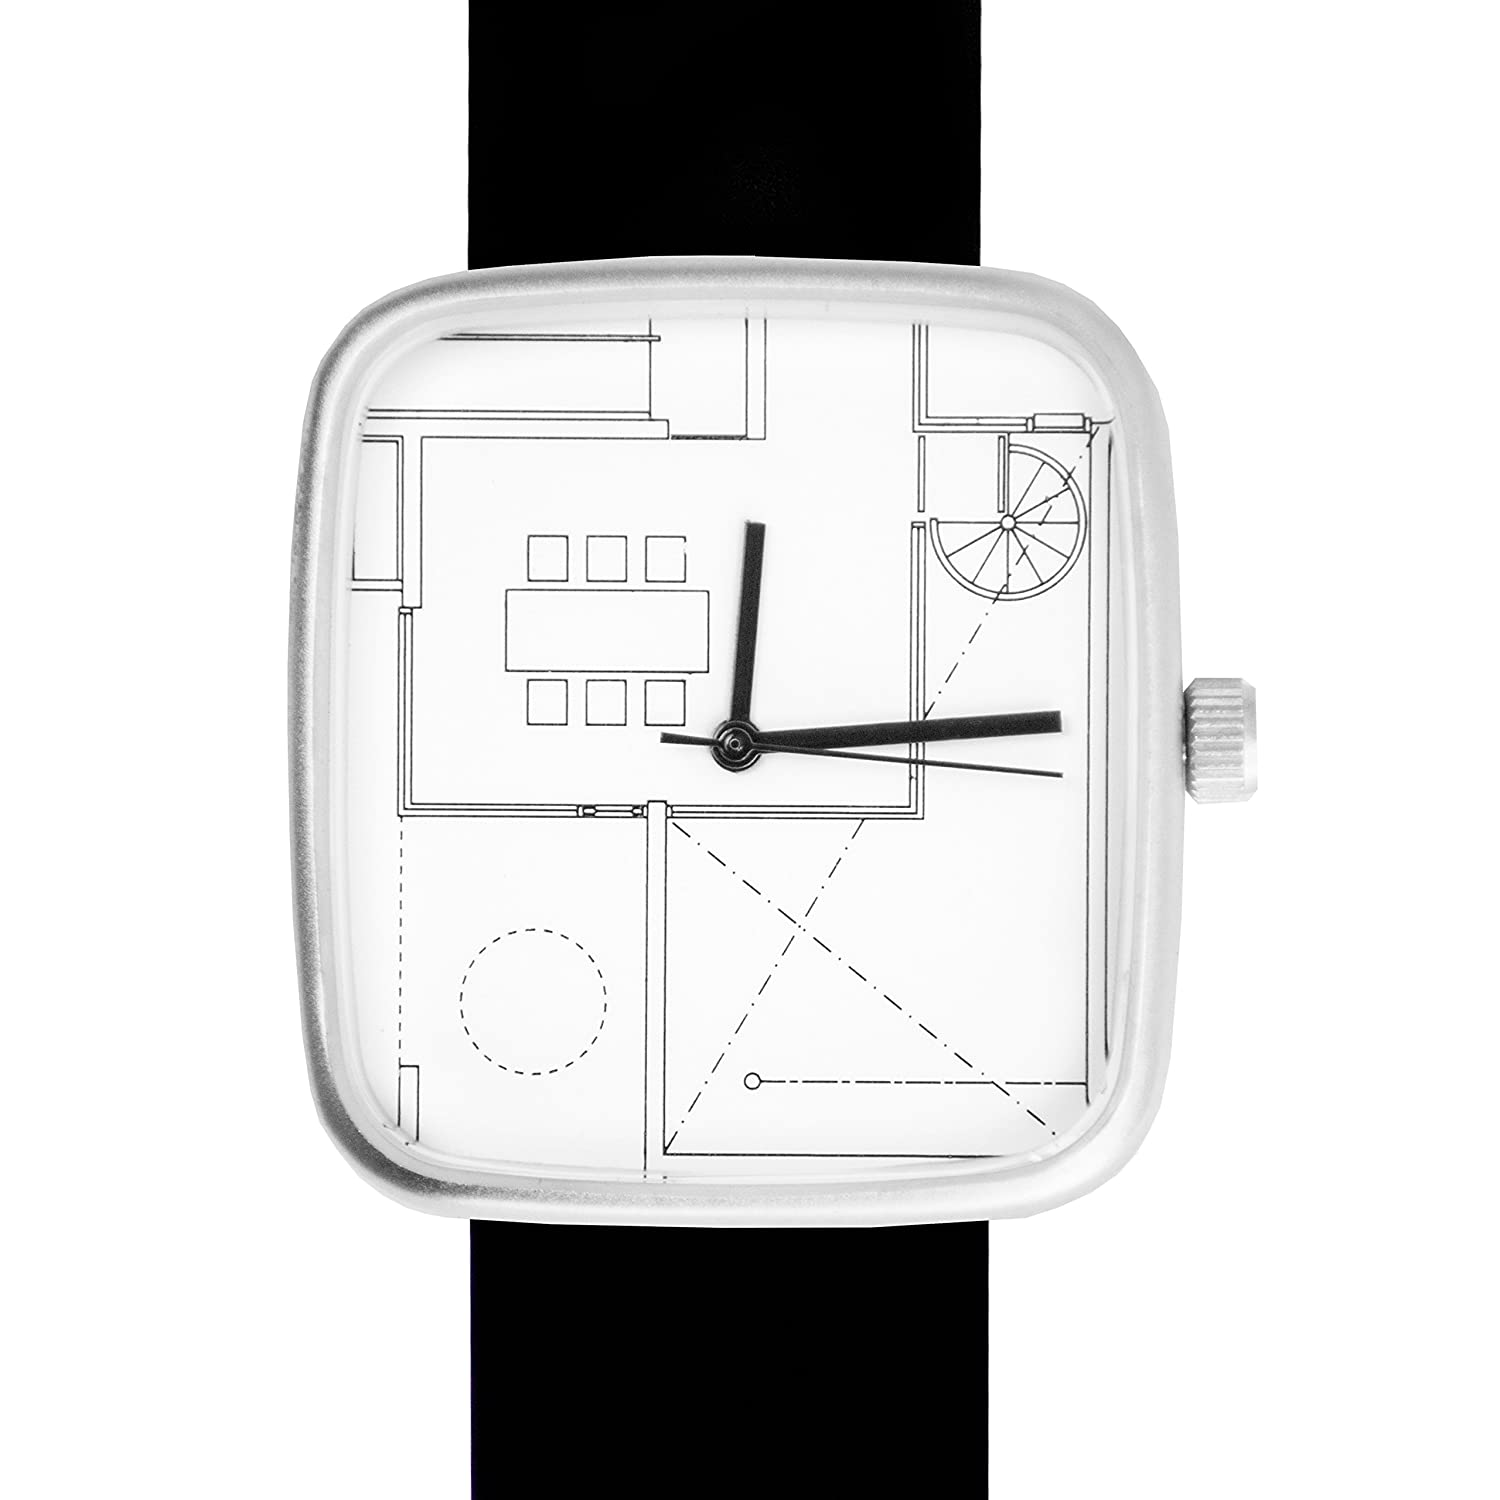 a simplicity watches milk architect for time updated minimalist minimalistwatch design roundup fine